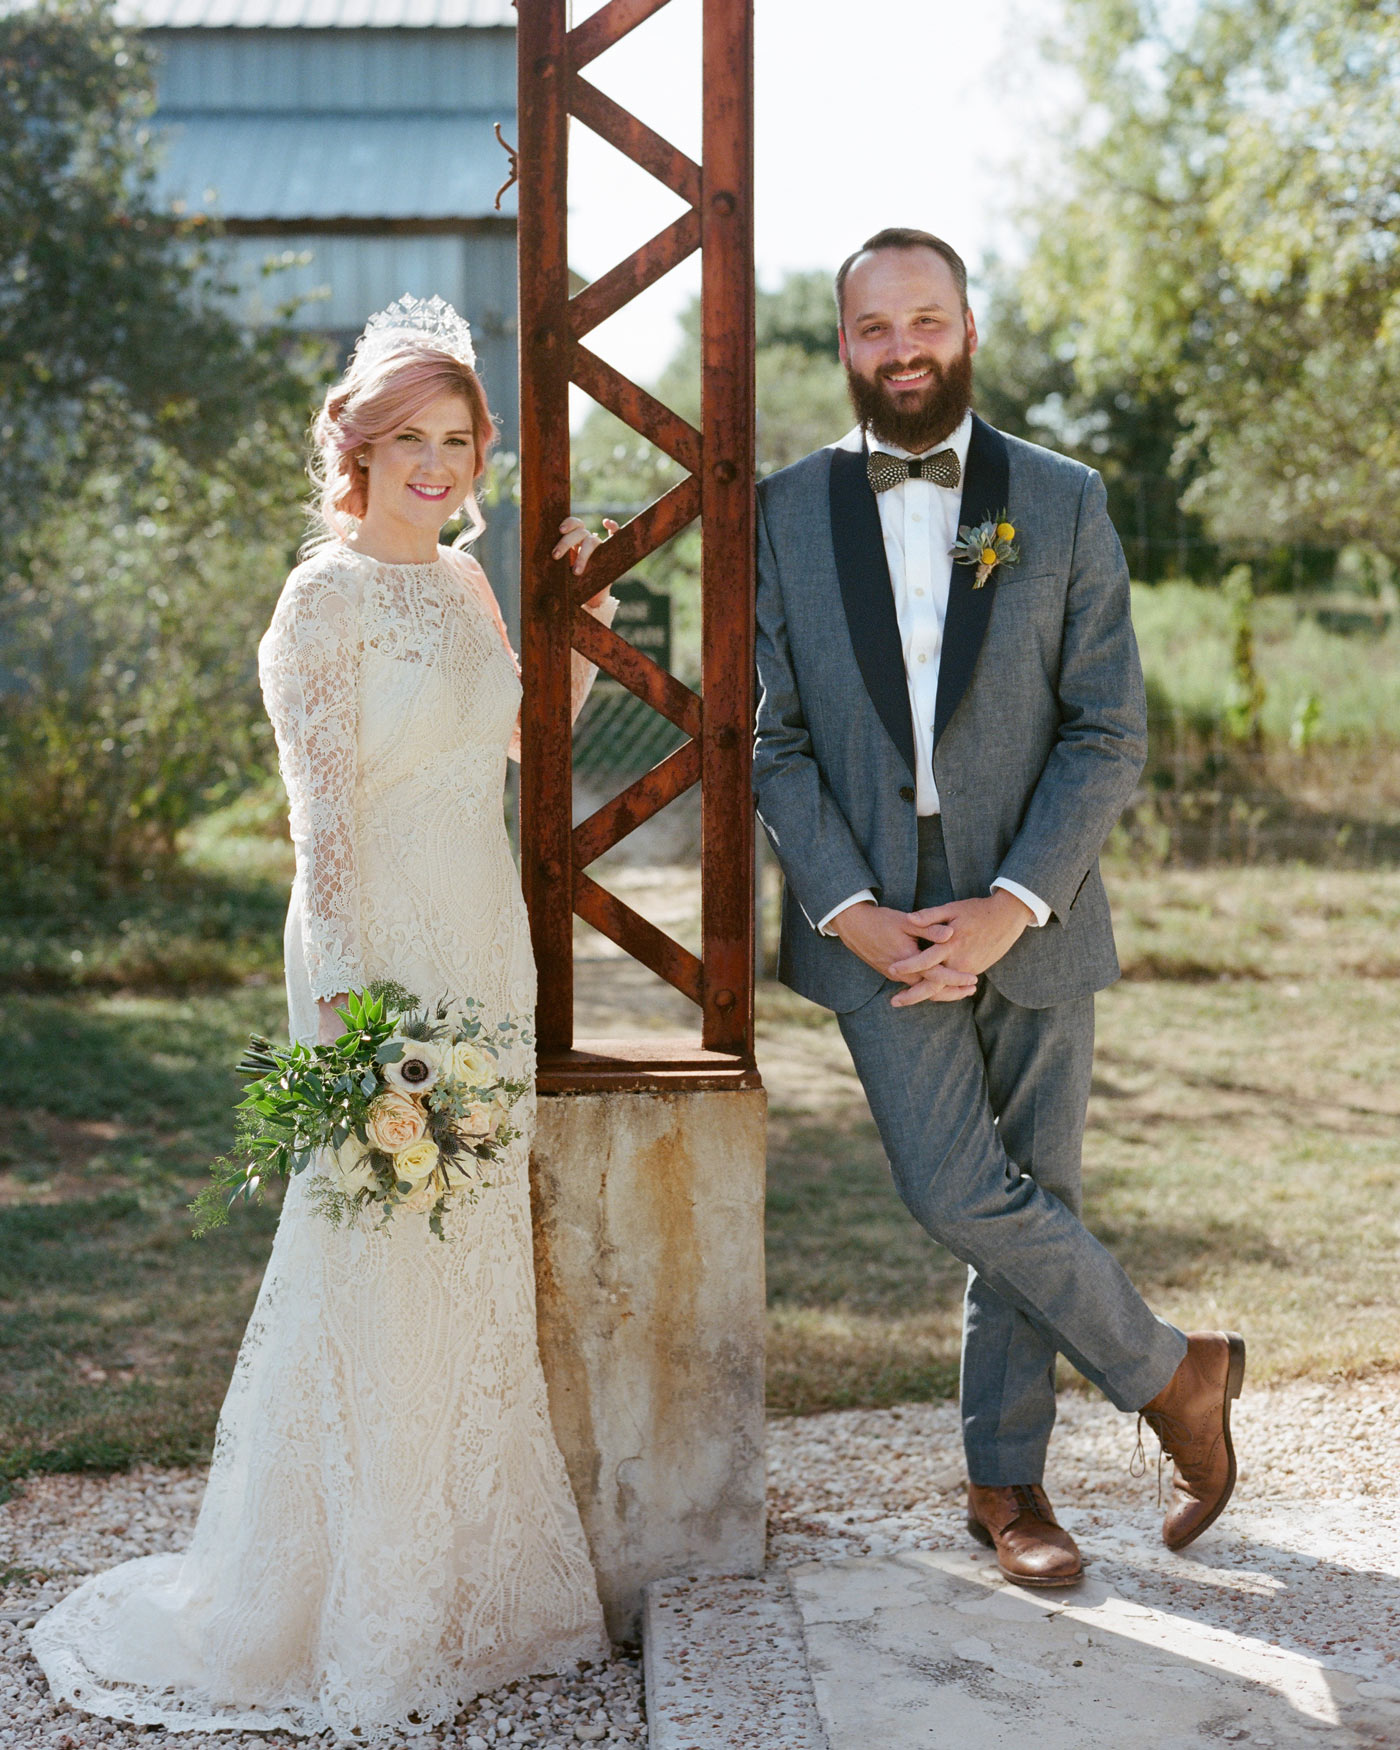 abby-chris-wedding-texas-couple-0404-s112832-0516.jpg